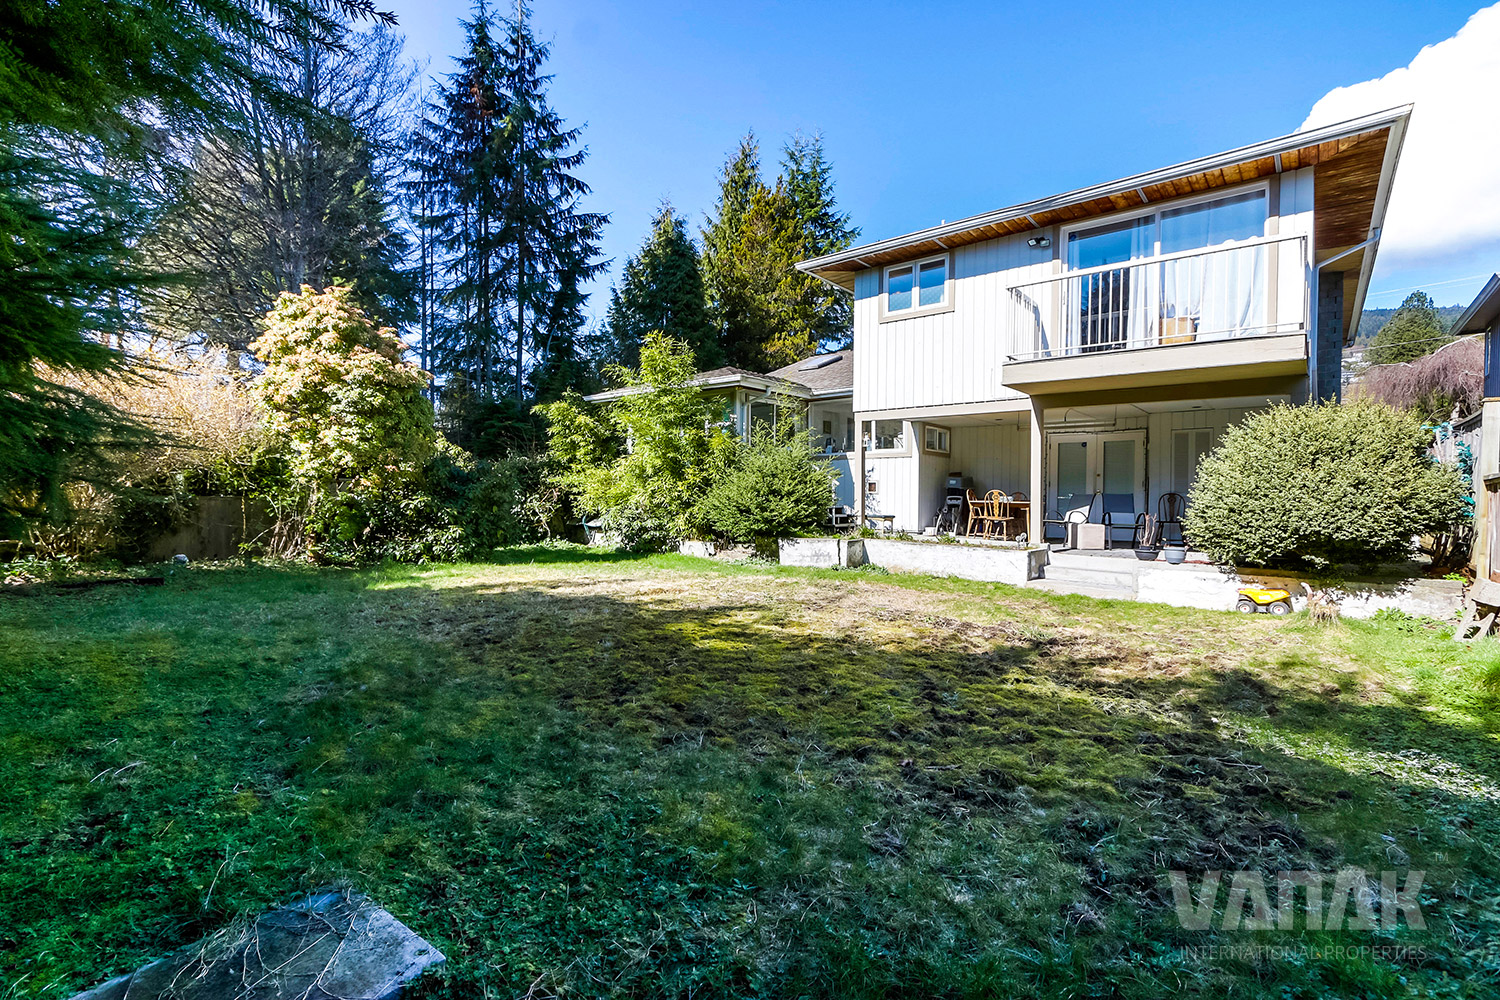 1840 MATHERS AVENUE, West Vancouver, BC, Canada, 5 Bedrooms Bedrooms, ,2 BathroomsBathrooms,Residential attached,Opportunity,MATHERS AVENUE,1500